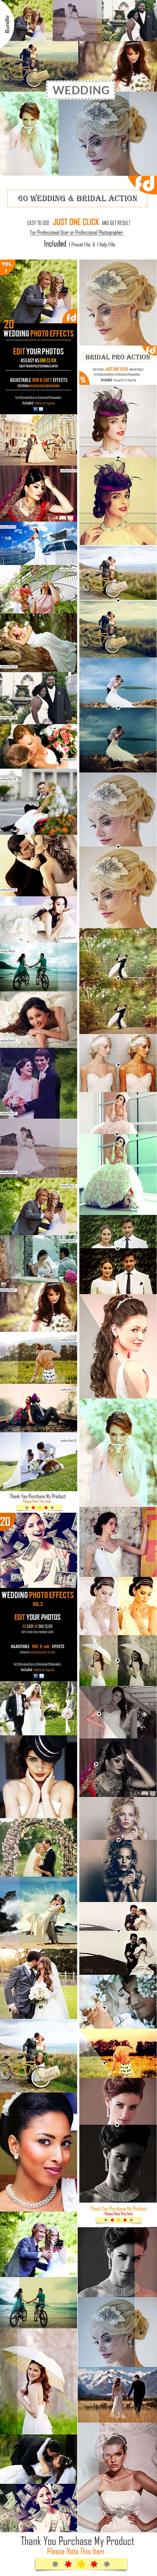 GraphicRiver 60 Wedding & Bridal Actions Bundle 11921214